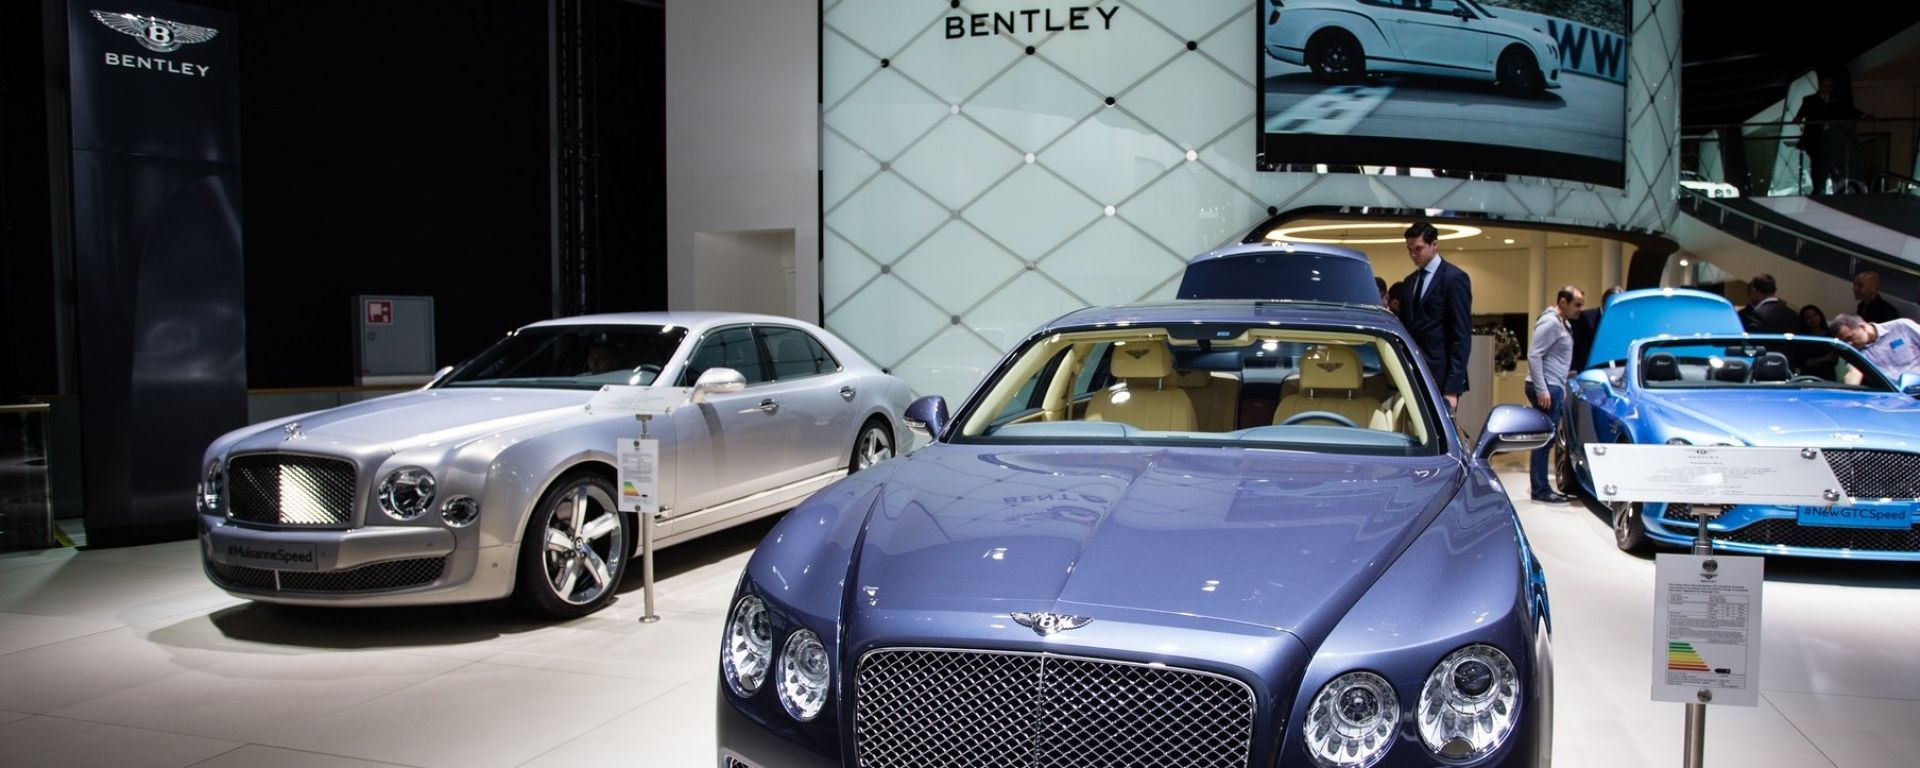 Bentley al salone di Francoforte 2017